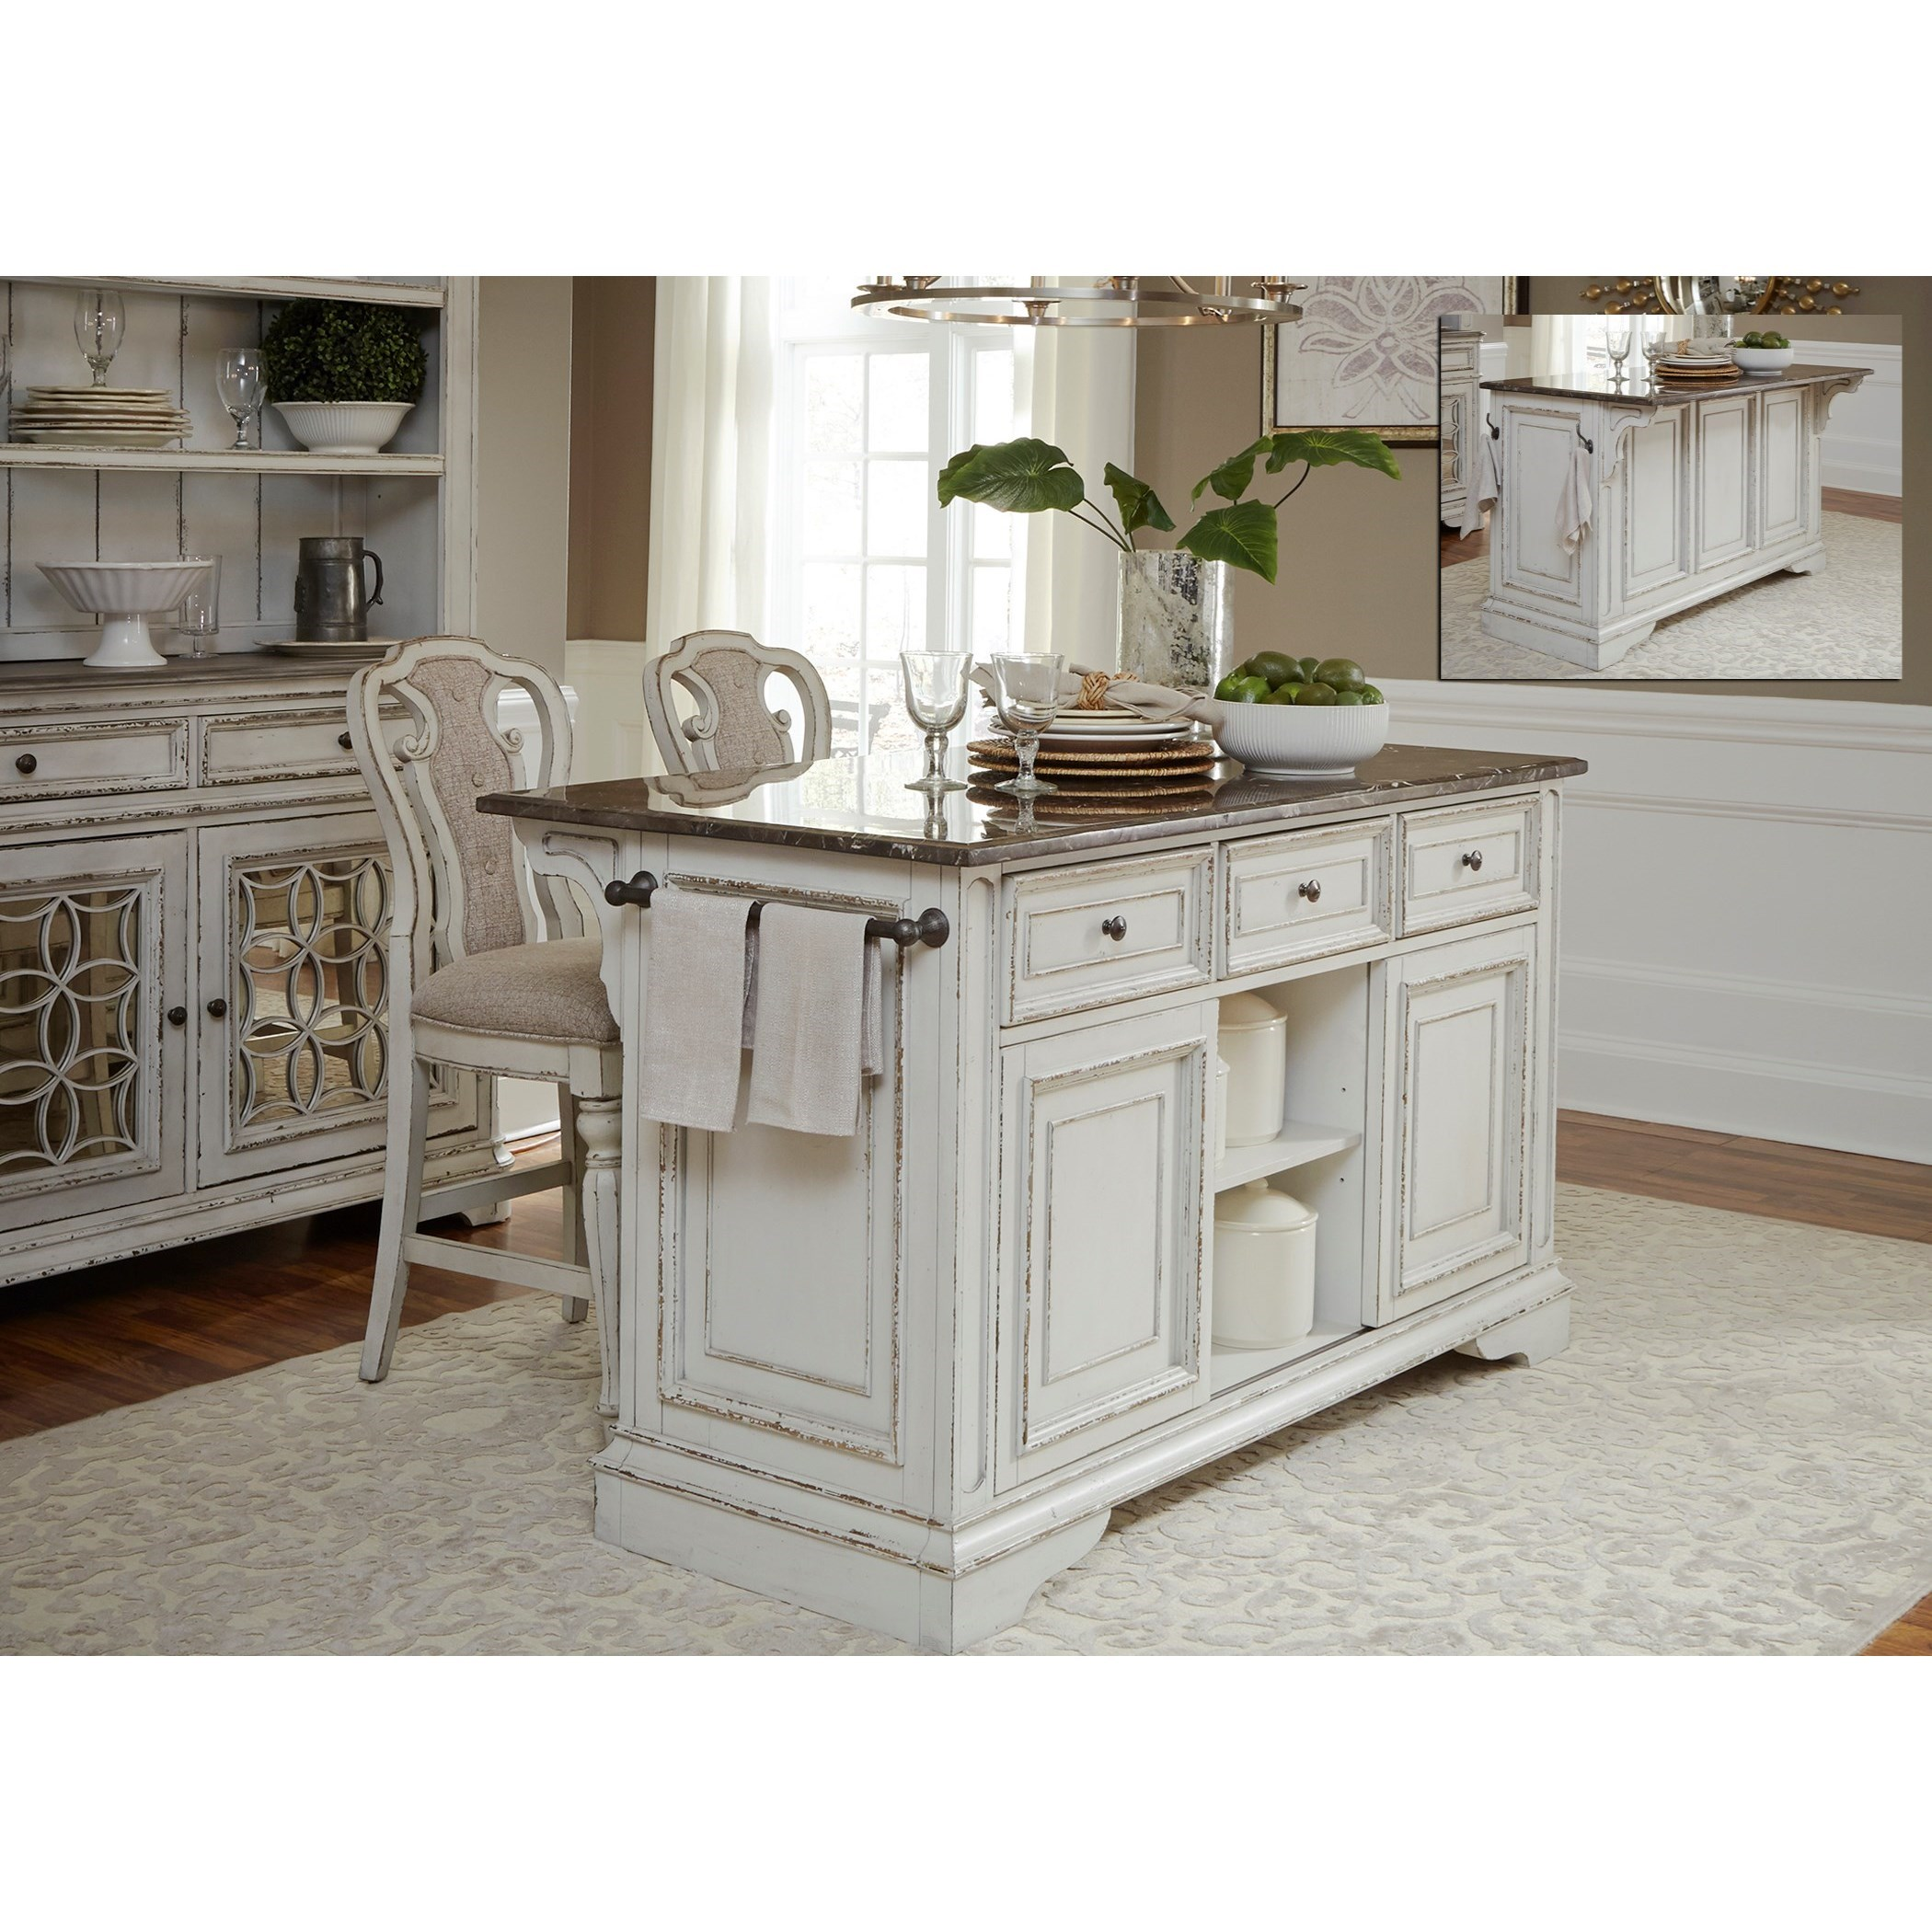 Morgan Kitchen Island and Stool Set by Libby at Walker's Furniture